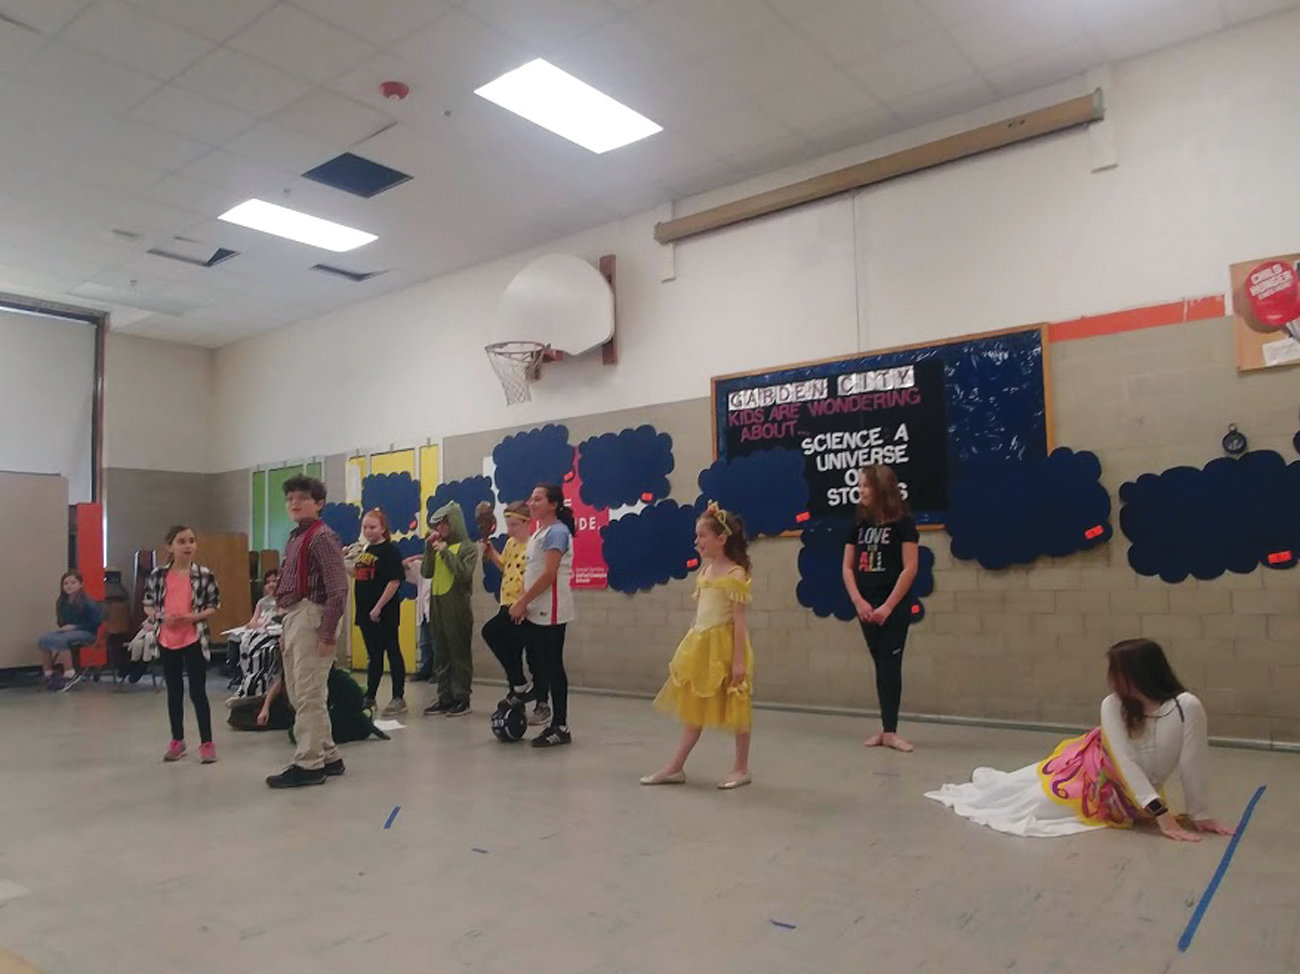 DEBUT PERFORMANCE: A group of Garden City Elementary School students recently showcased their theatrical skills, performing a show they'd created themselves during the after school theater program at the school. The students worked with Jordan Butterfield from Trinity Rep during their time in the program.